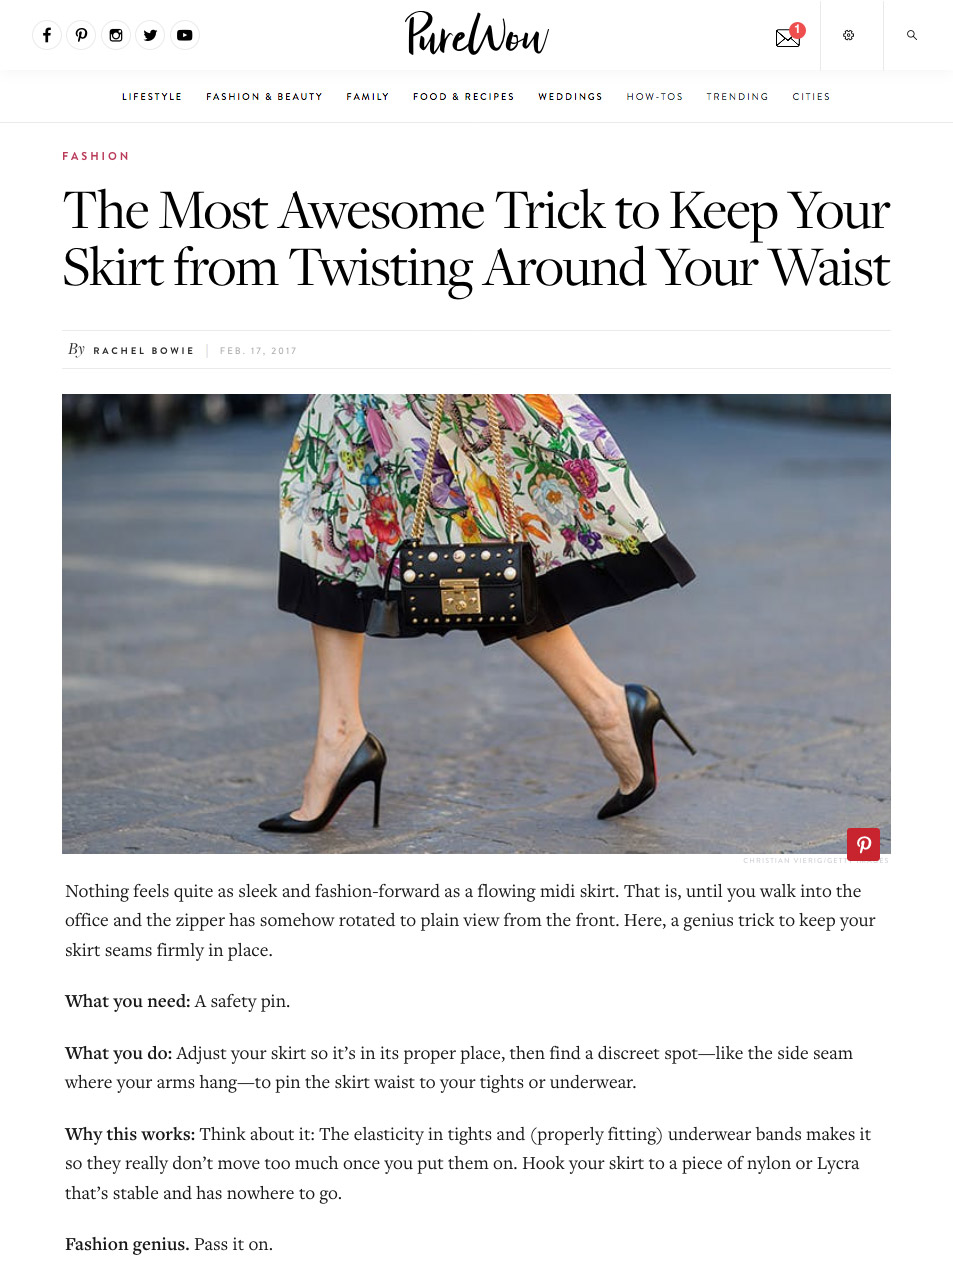 How to Keep Your Skirt from Twisting Around Your Waist PureWow - 2017 03 - Alexandra Lapp - found on http://www.purewow.com/fashion/how-to-keep-your-skirt-from-twisting